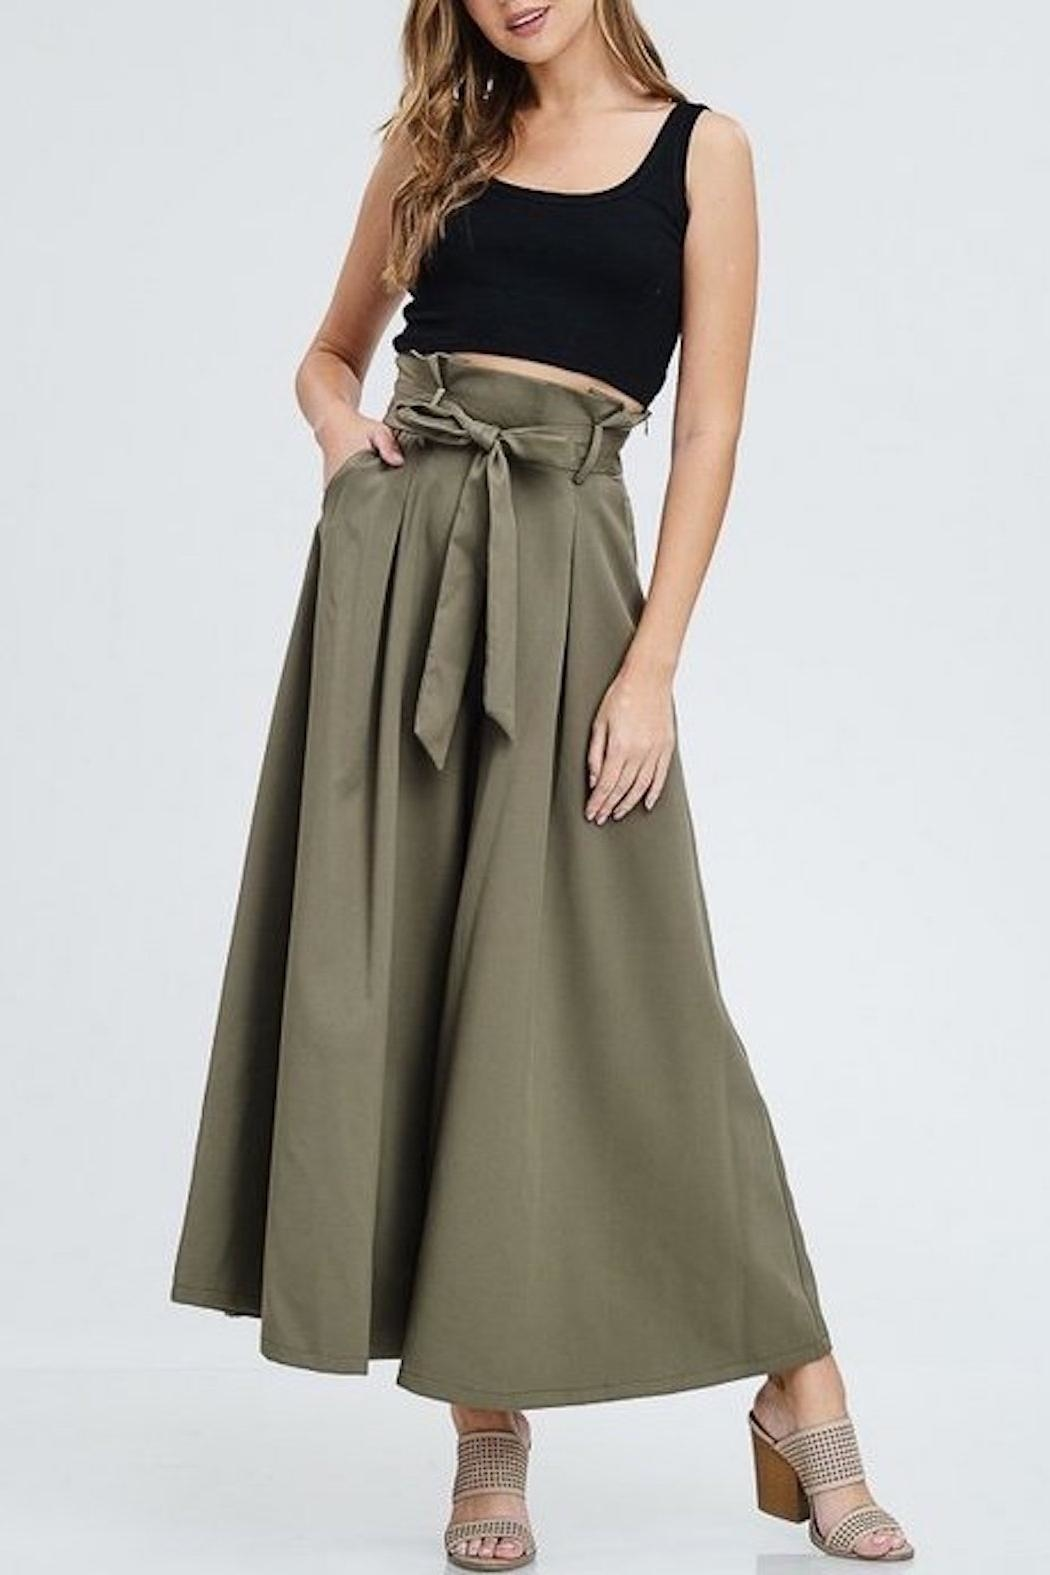 The Clothing Co High-Waist Wide-Leg Black-Dress-Pant - Front Full Image